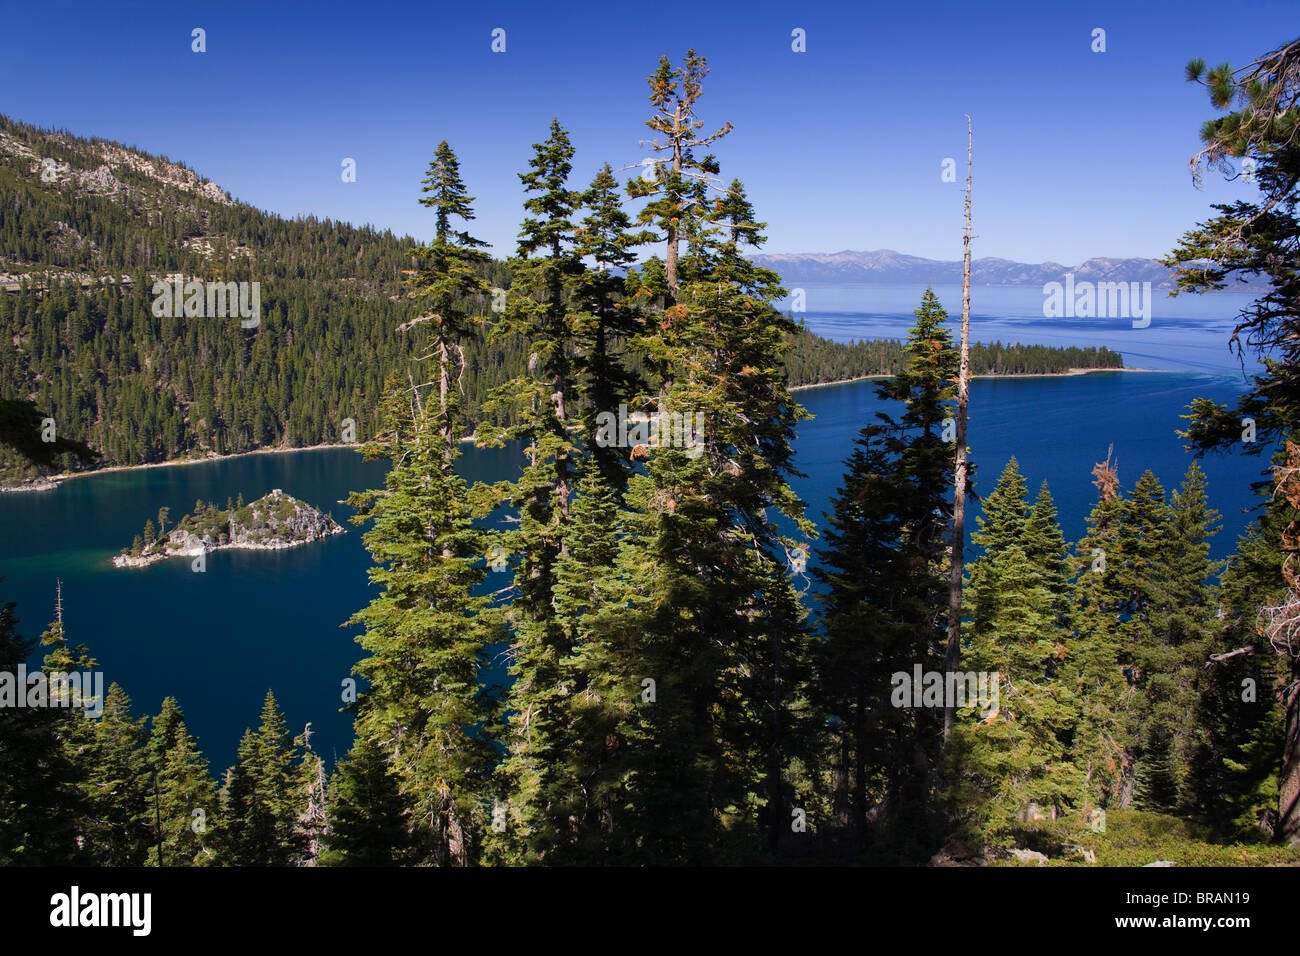 Fannette Island in Emerald Bay State Park, Lake Tahoe, California, United States of America, North America - Stock Image